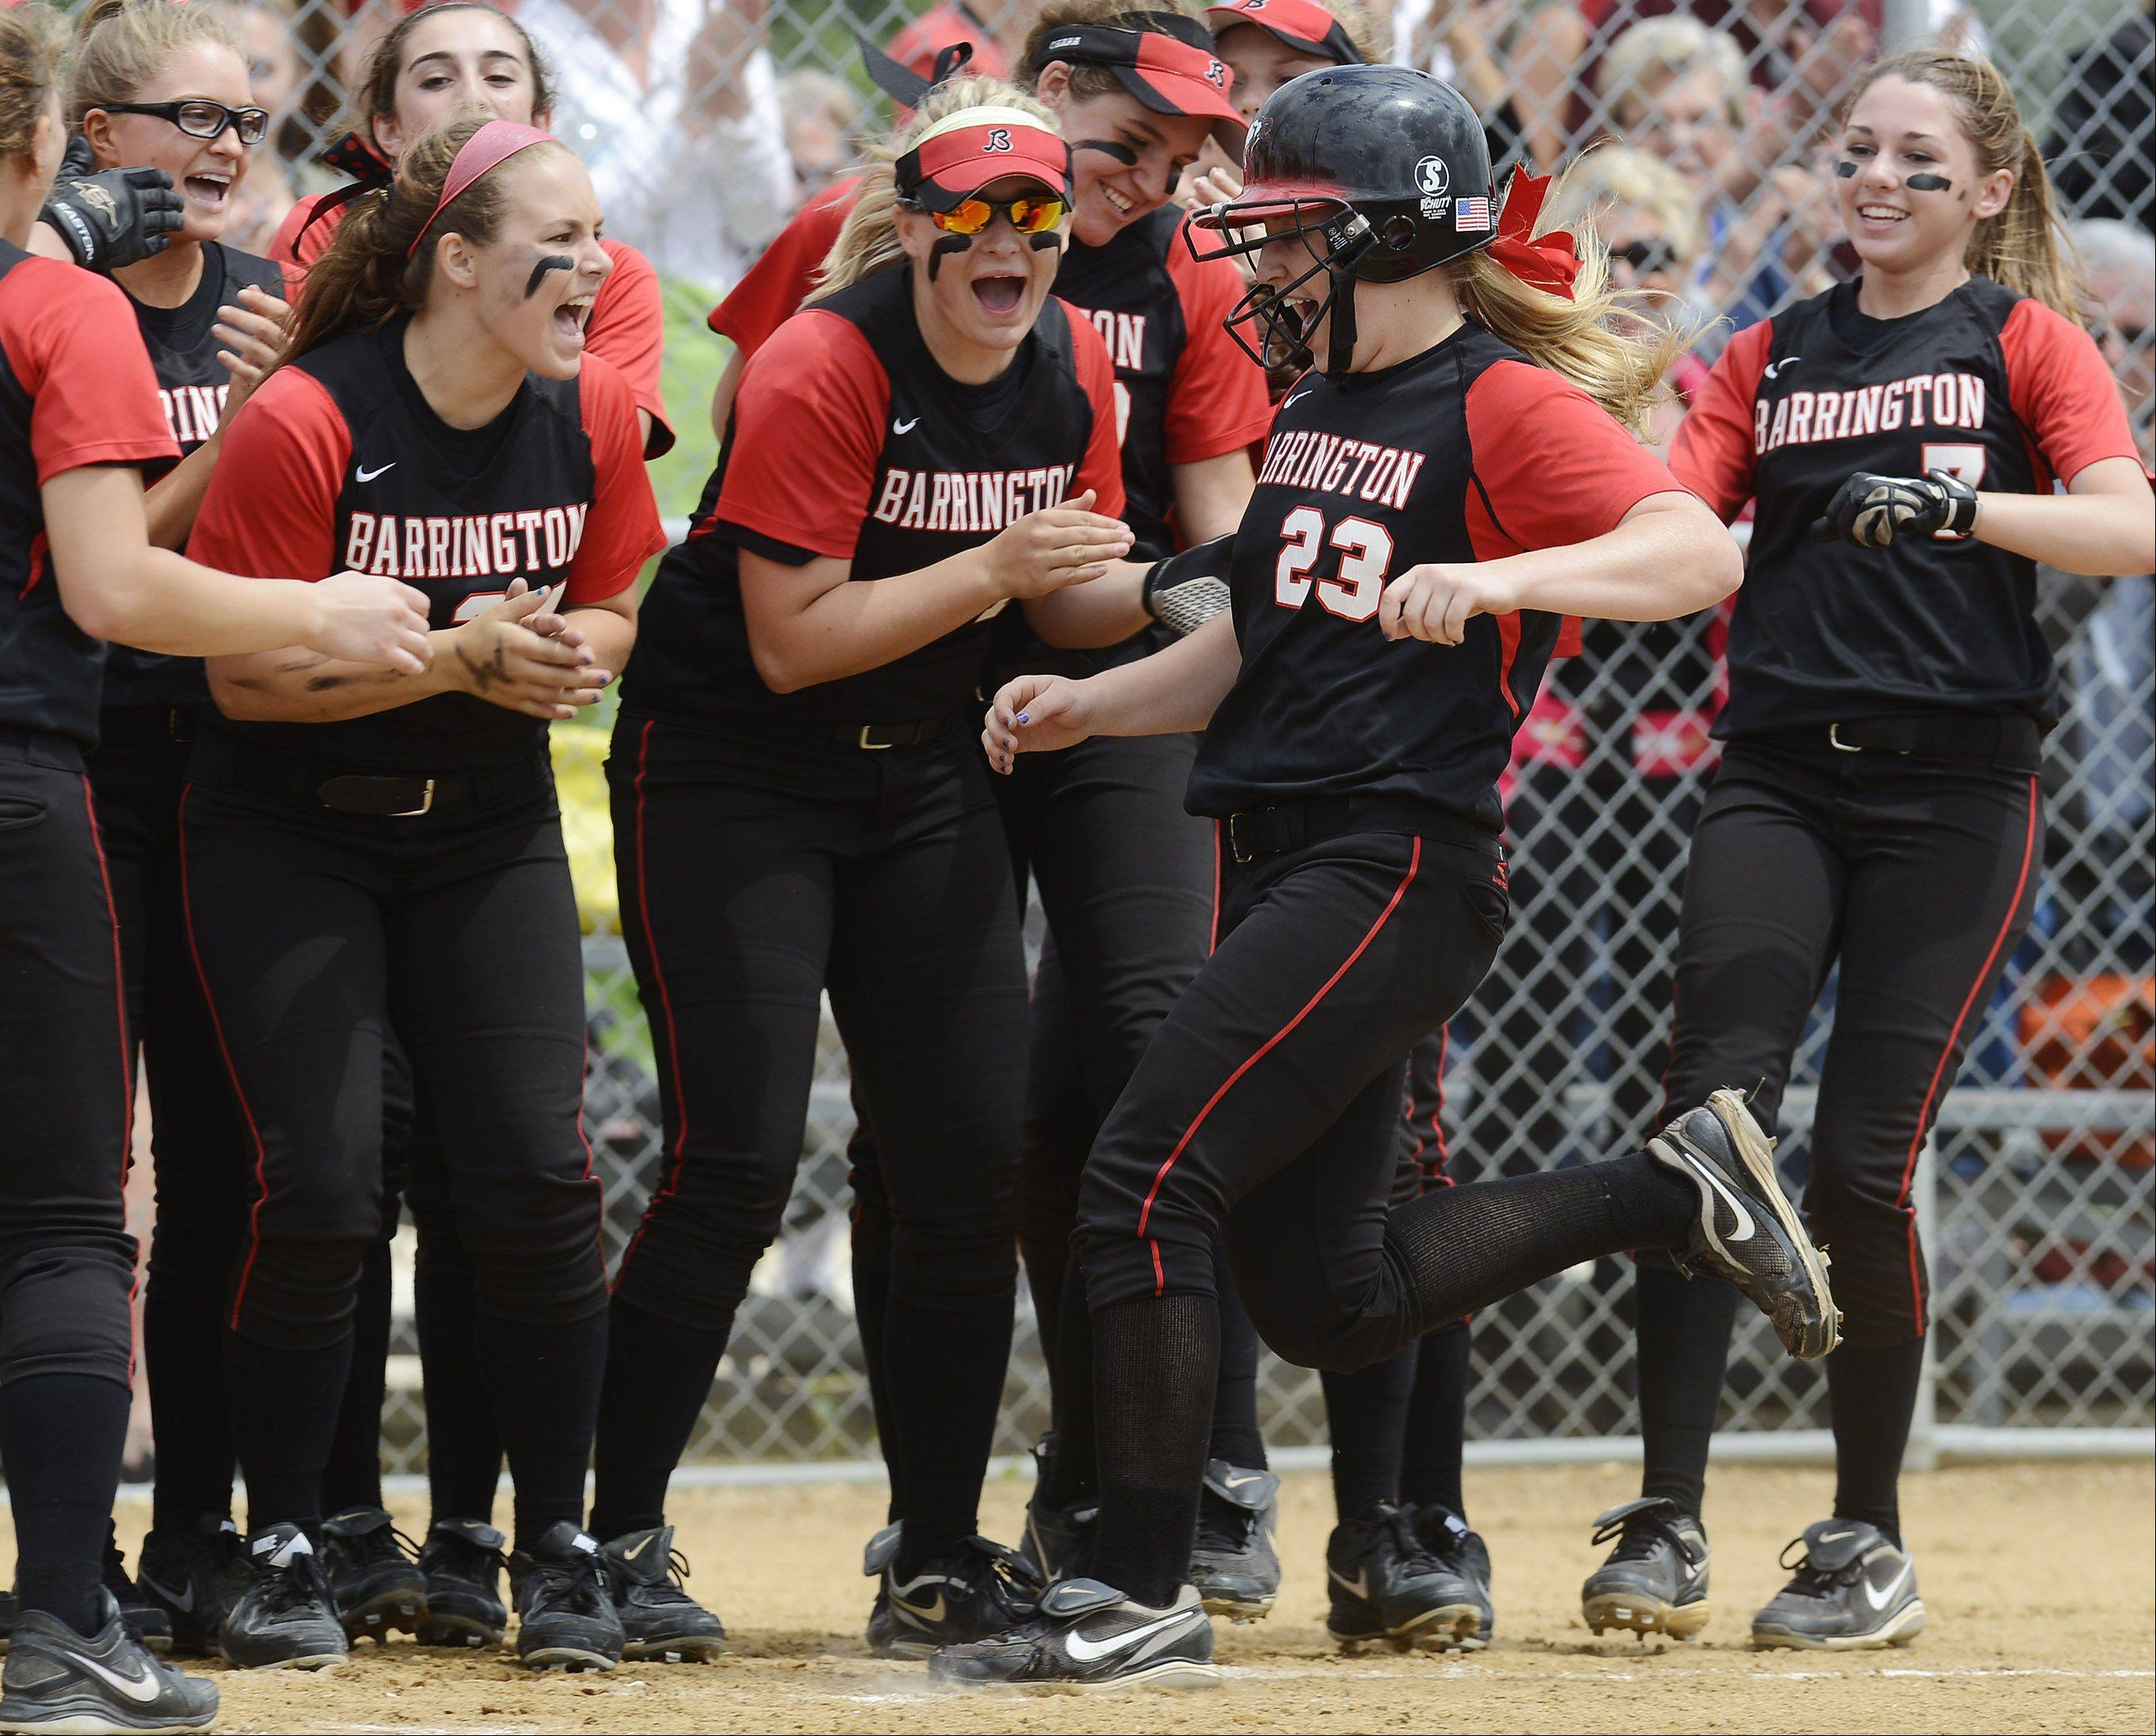 Barrington's Tess Bolger (23) is greeted at the plate by her teammates after hitting a leadoff home run against New Trier during the Rolling Meadows sectional final Saturday.